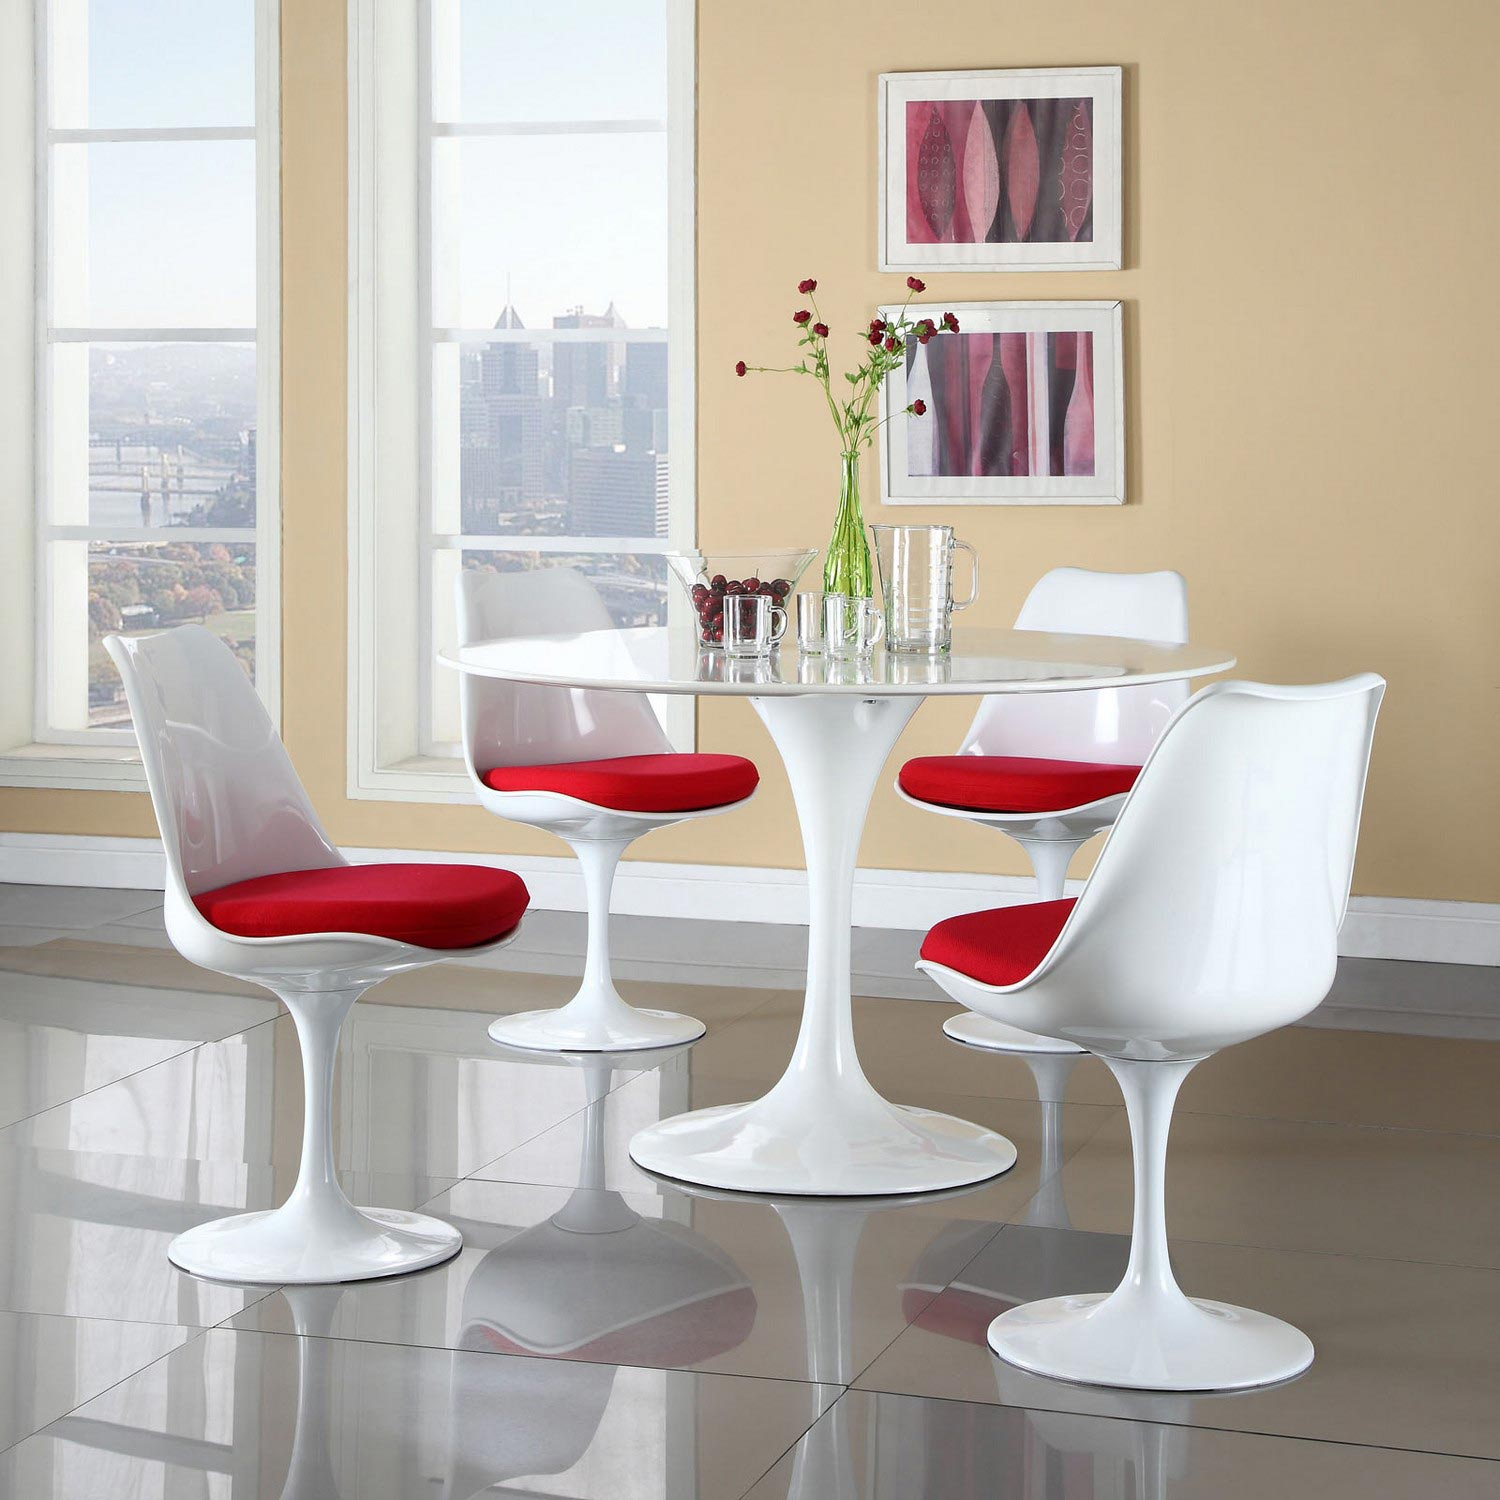 Modway Lippa 5 Piece Fiberglass Dining Set - Red